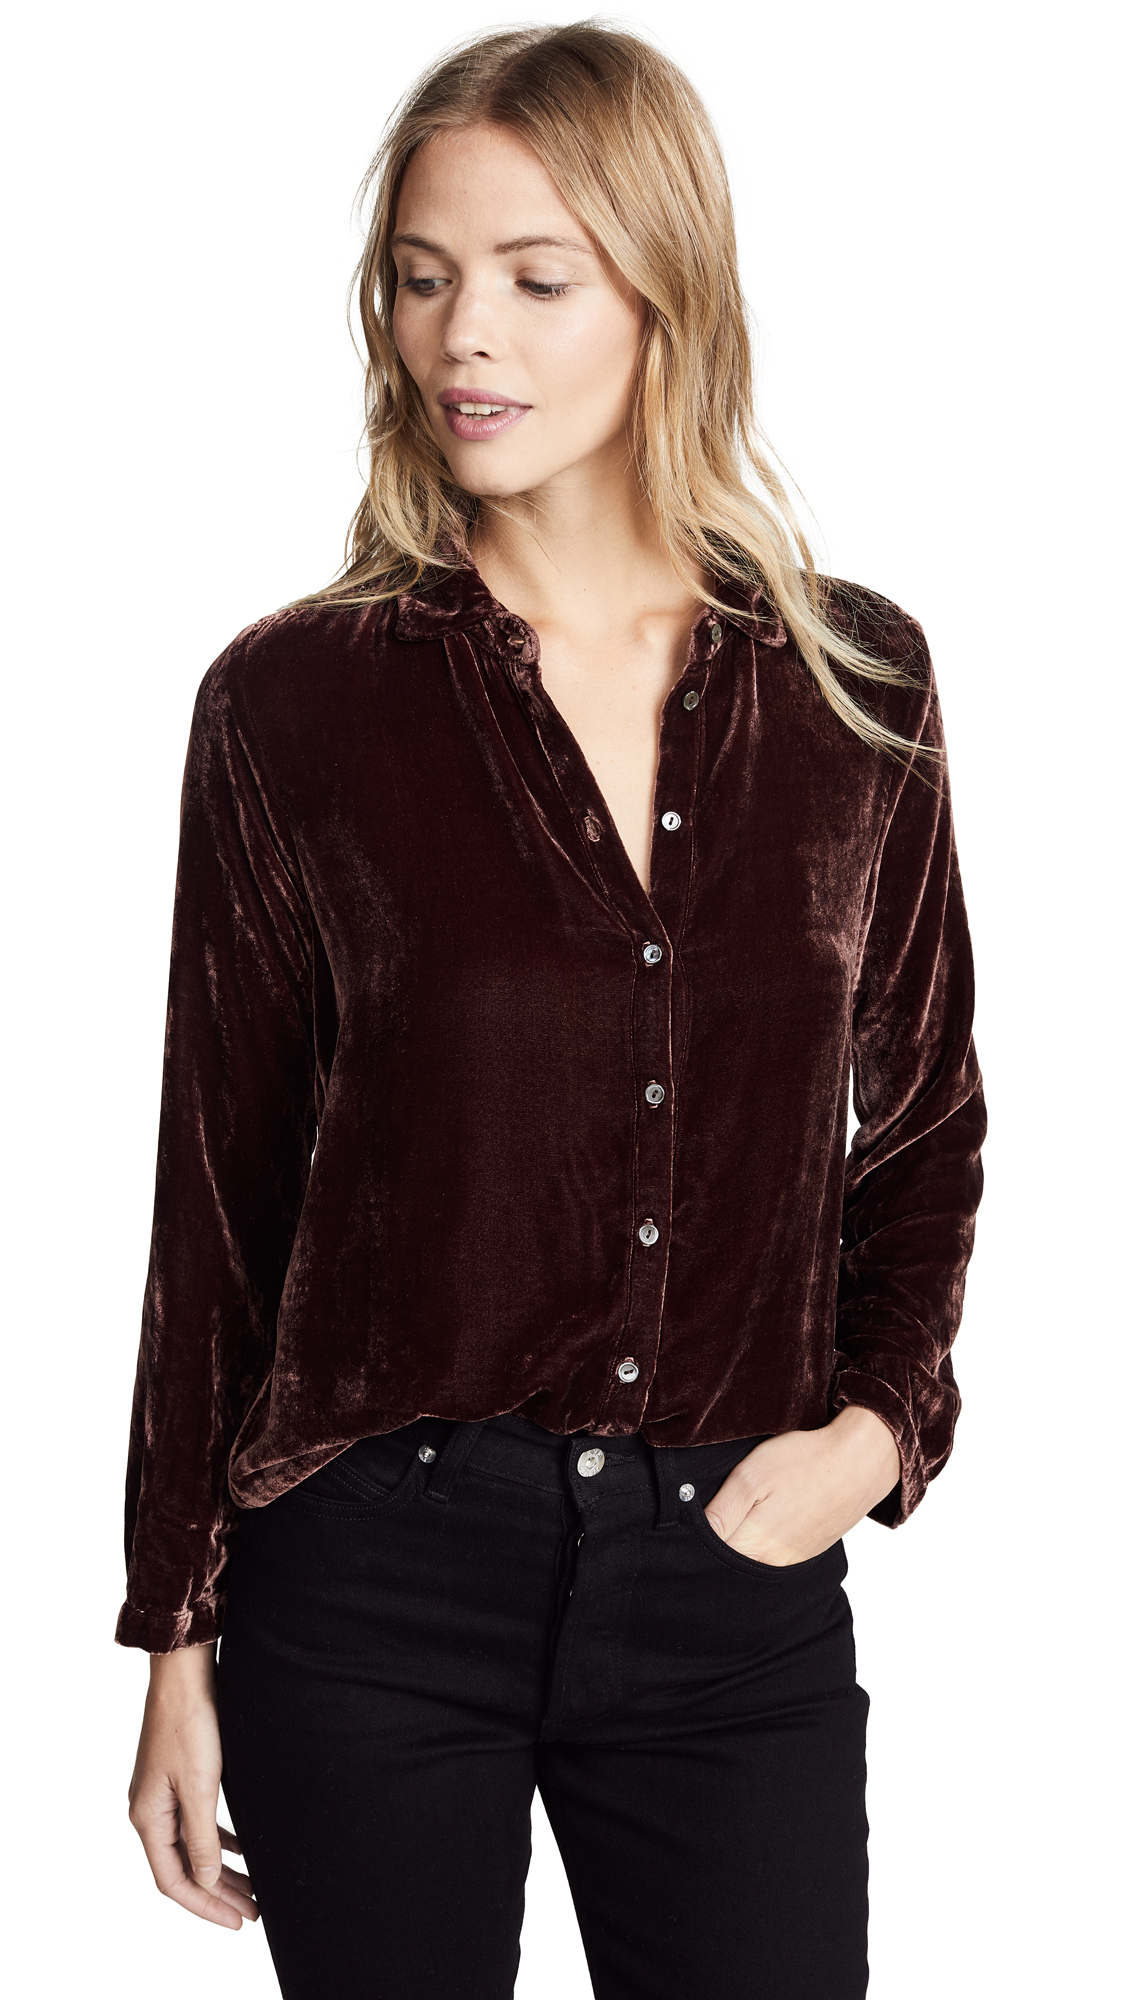 Velvet Jensine Button Down Shirt - Vino